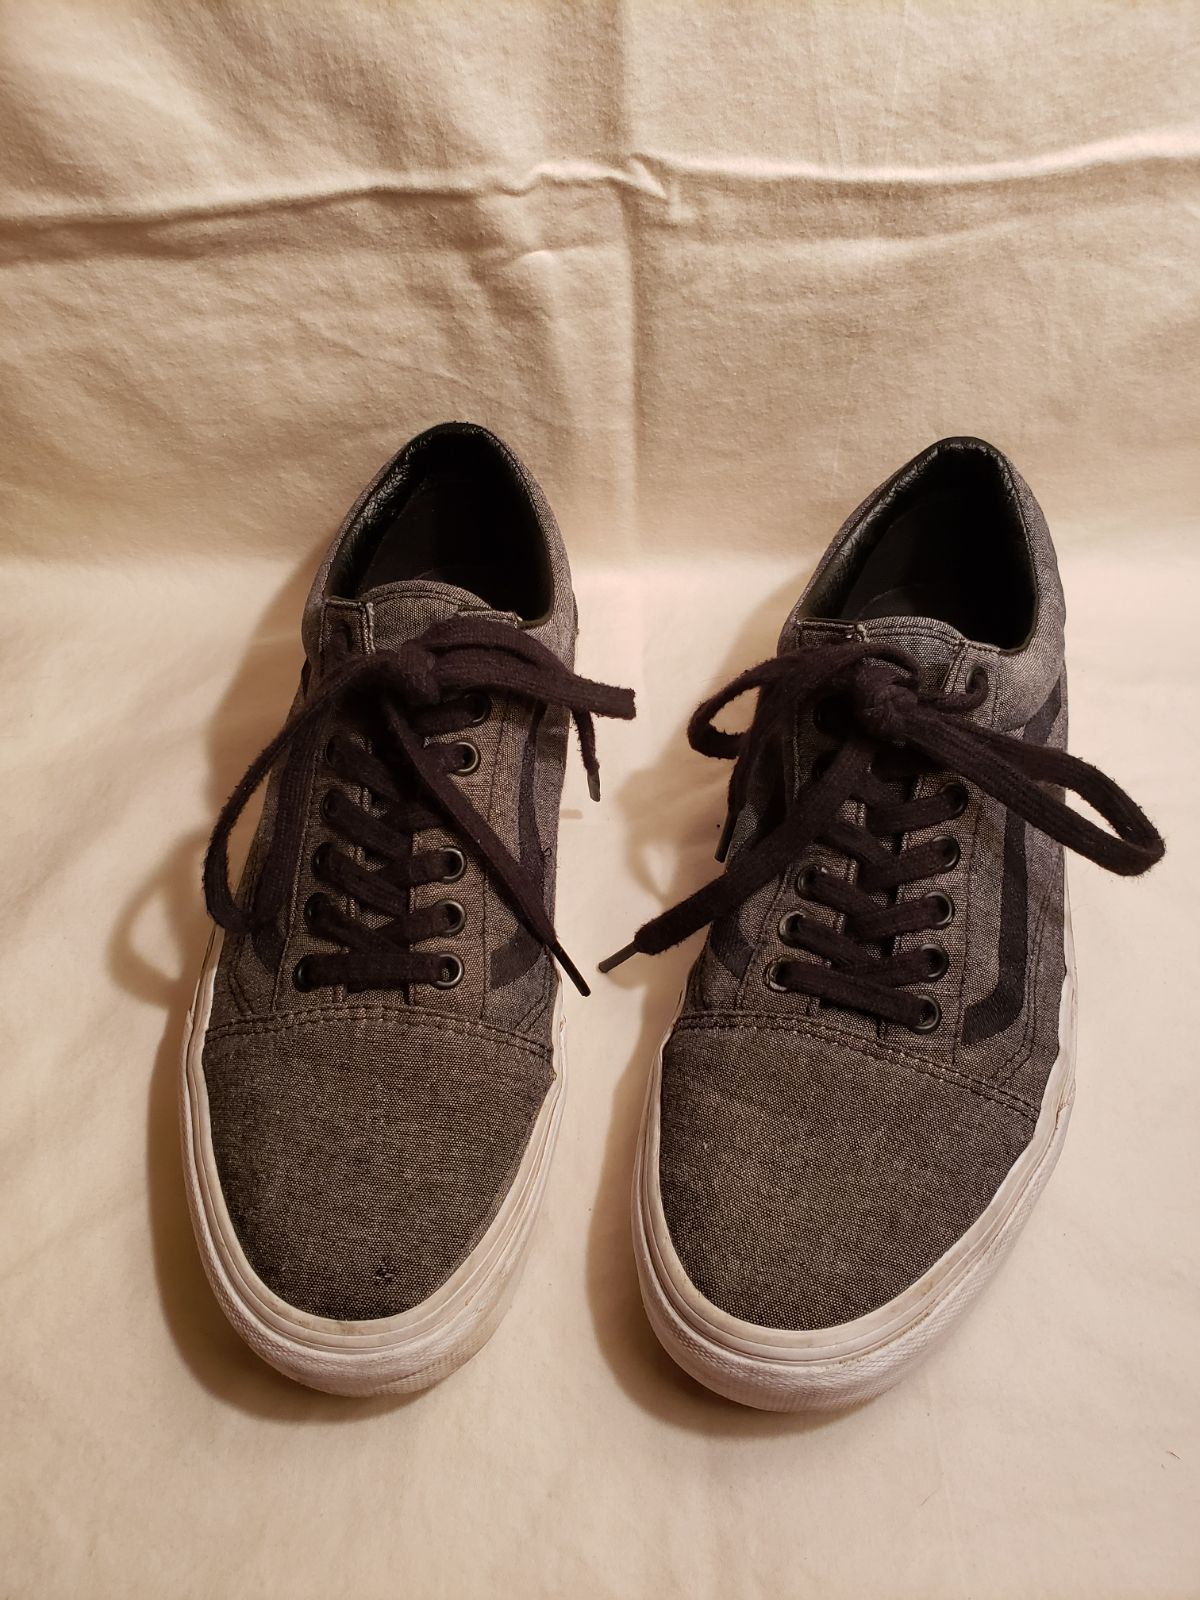 VANS Old Skool black and gray mens sneak